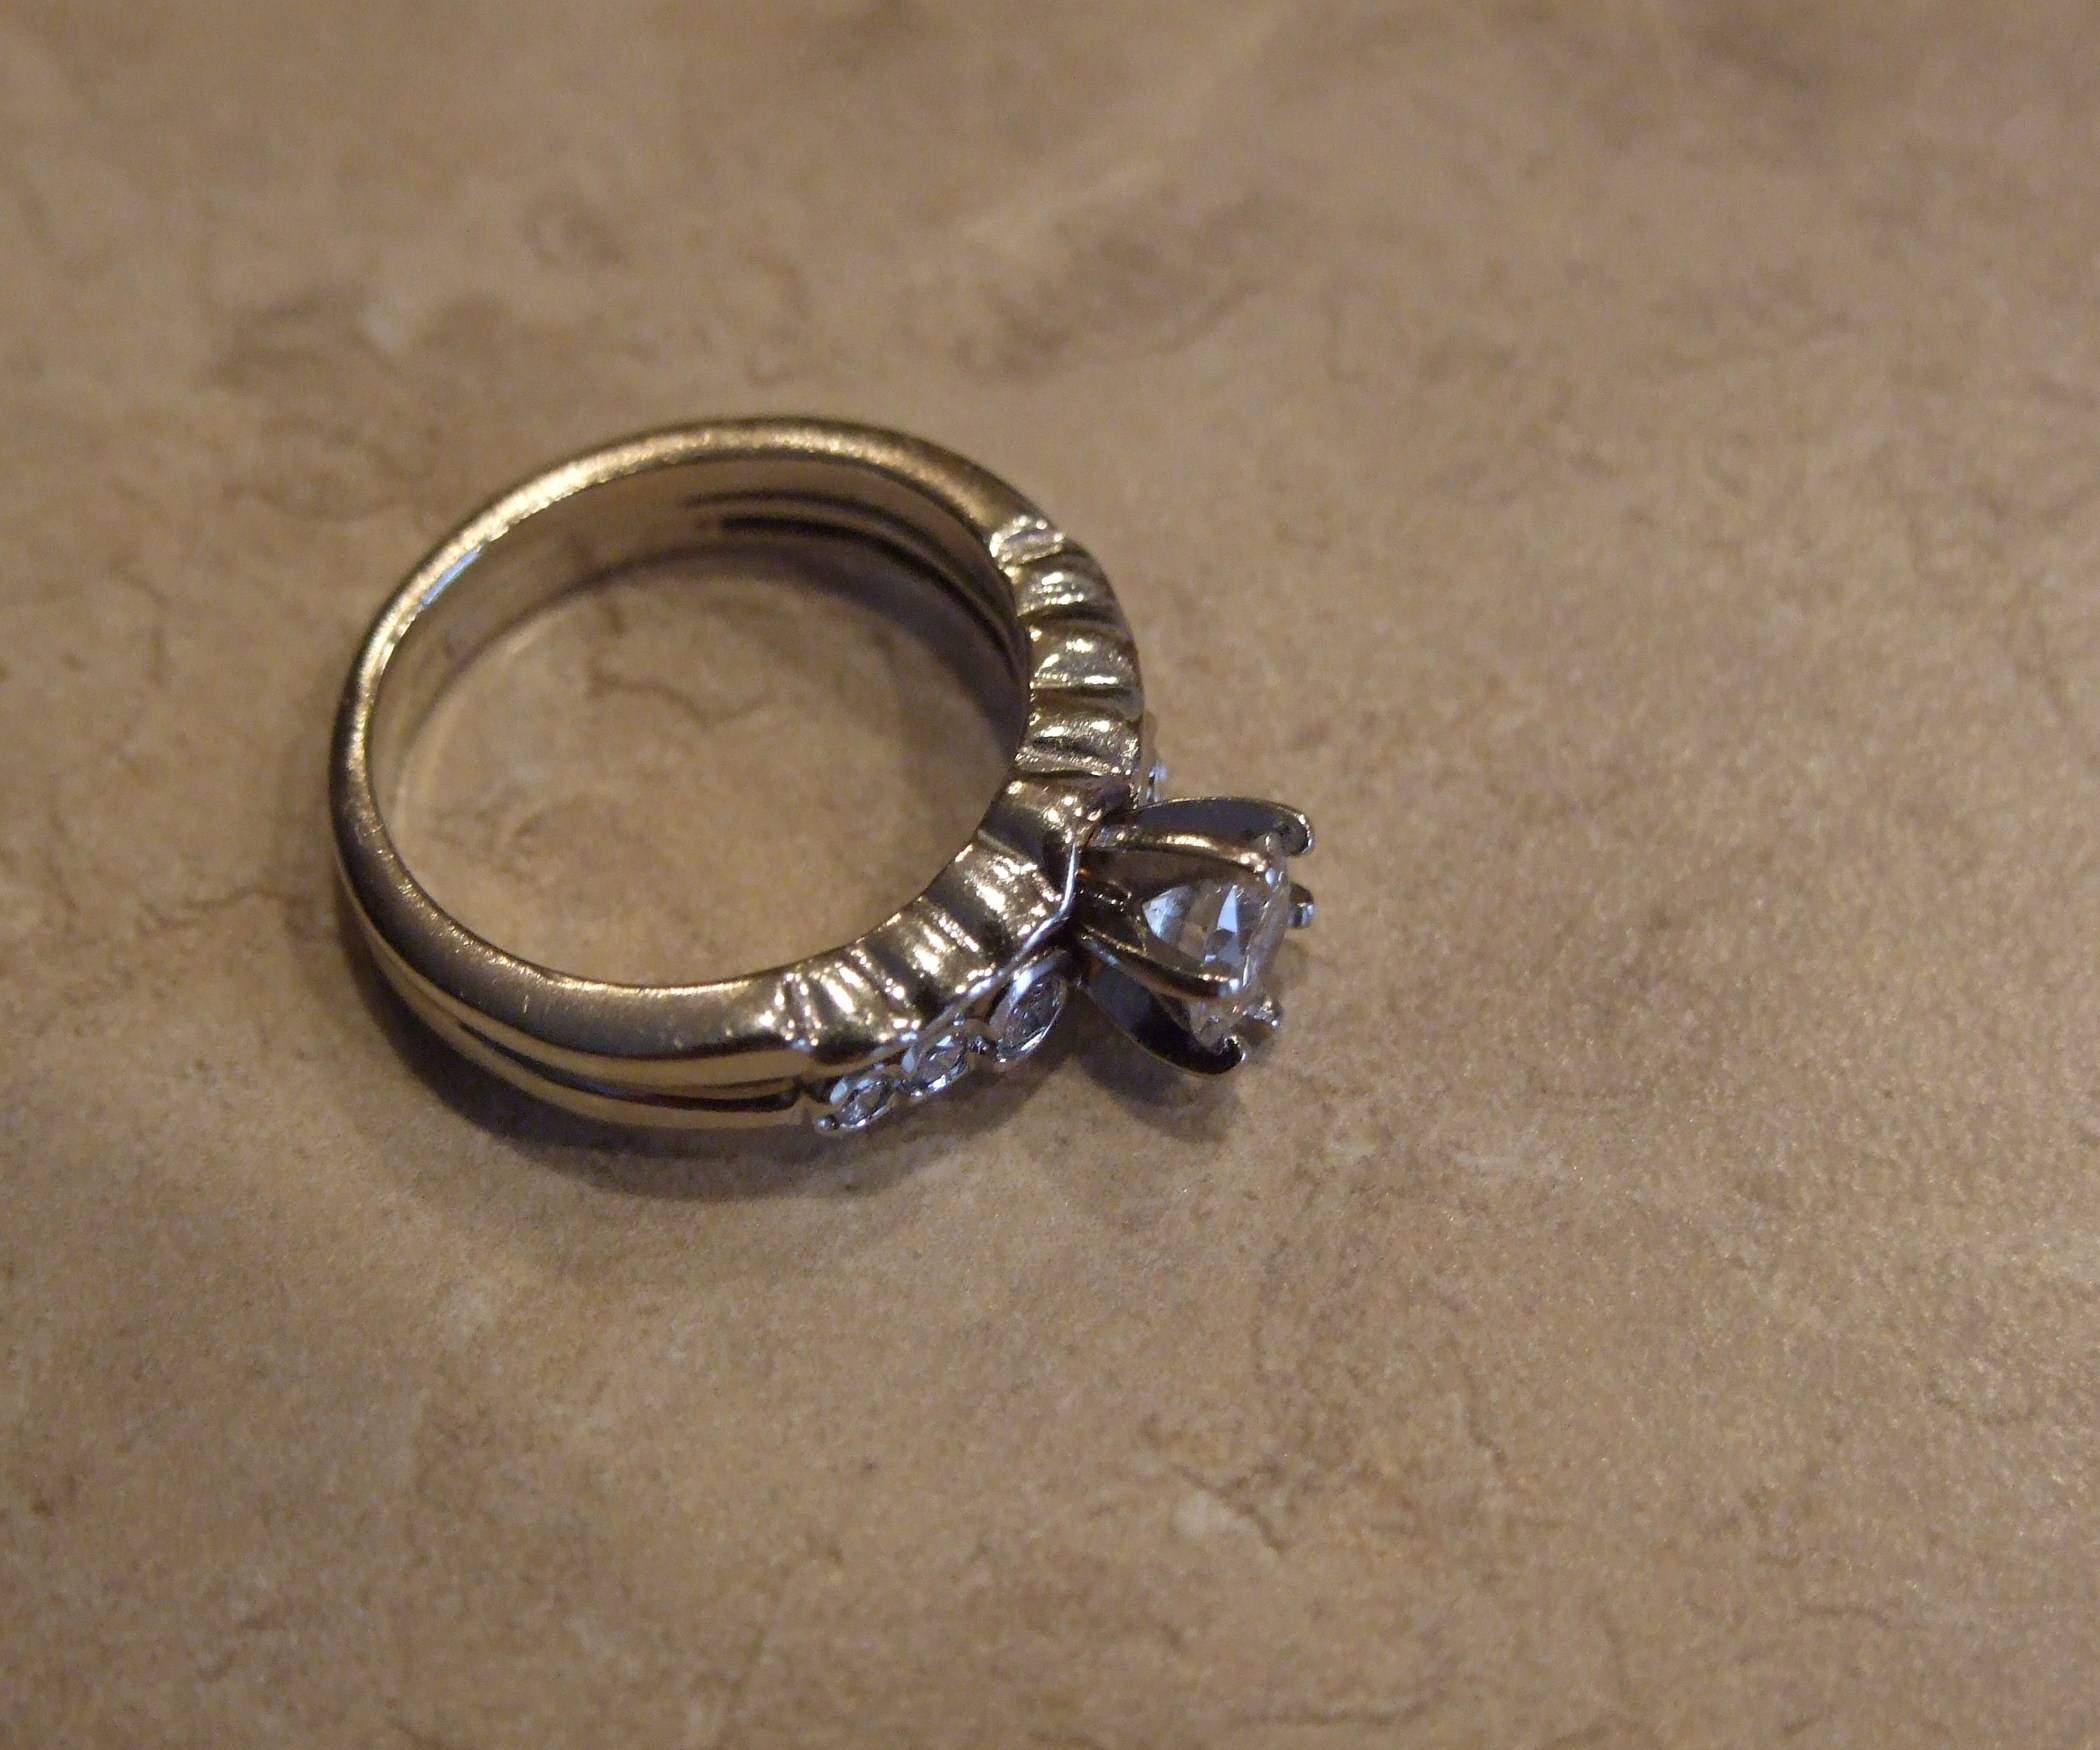 How To Clean An Engagement Ring: 7 Steps Pertaining To Homemade Engagement Rings (View 12 of 15)